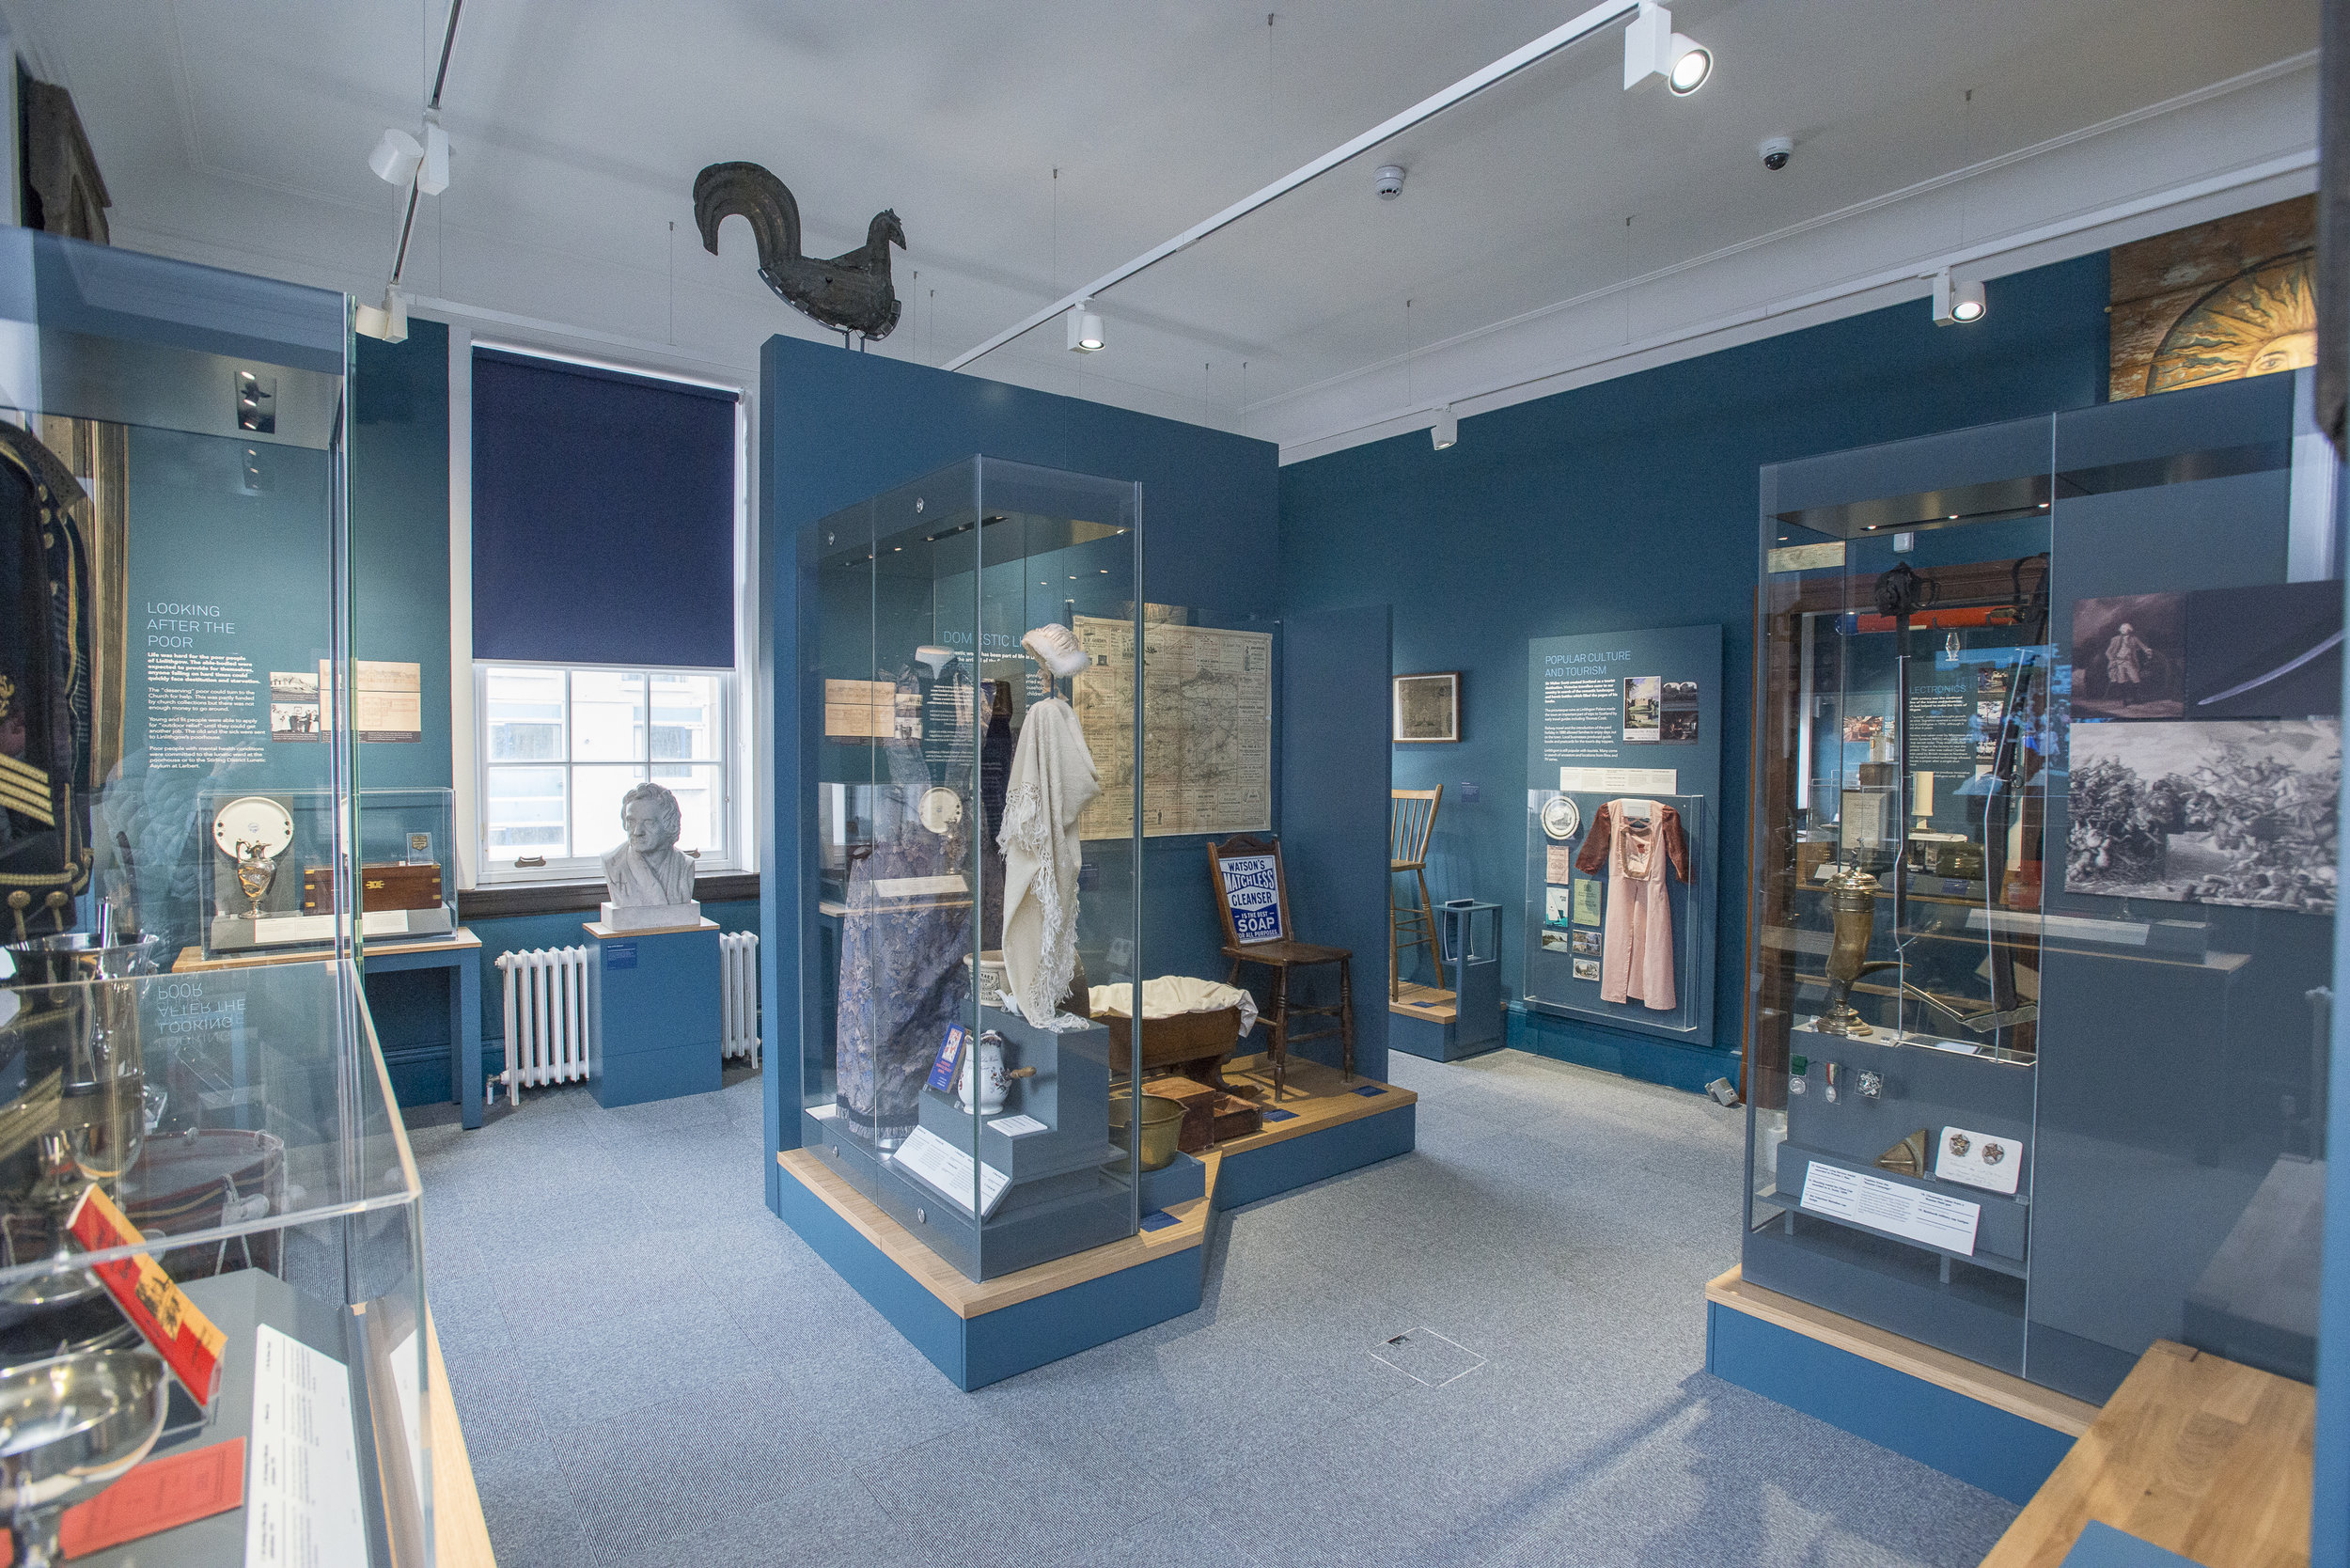 GALLERY 3 - LINLITHGOW LIFE - In this gallery visitors can learn about the Linlithgow Marches, sports and leisure, politics, education and so much more. Key objects include Tam Dalyell's typewriter, our Waldie digital interactive and the hugely impressive Scotch Brigade banners.